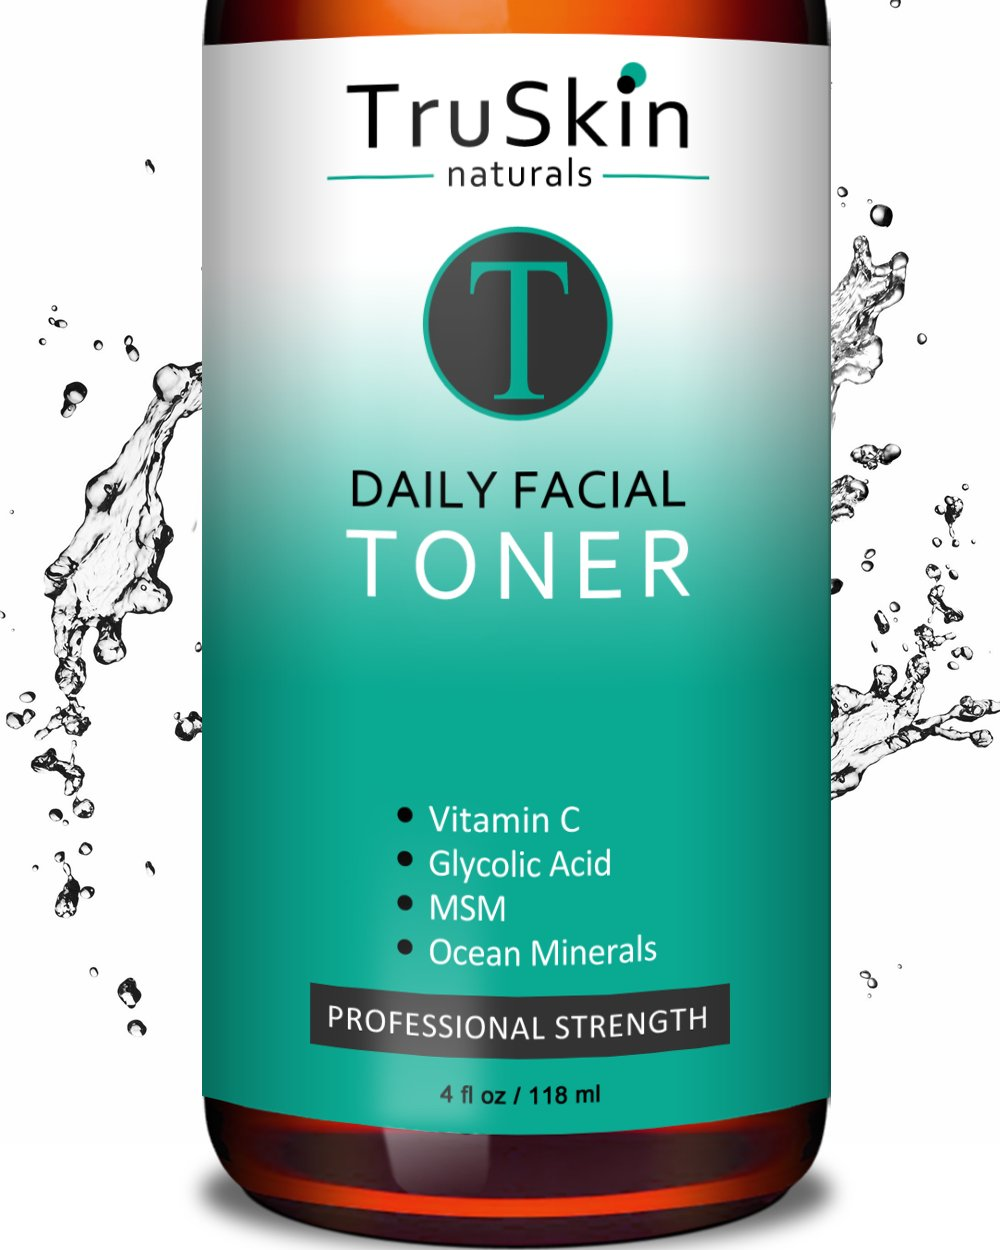 DAILY Facial SUPER Toner for All Skin Types, Contains Glycolic Acid, Vitamin C, Witch Hazel and Organic Anti Aging Ingredients for Sensitive Skin, Combination, Acne, and Even Oily Skin TruSkin Naturals 784672000000